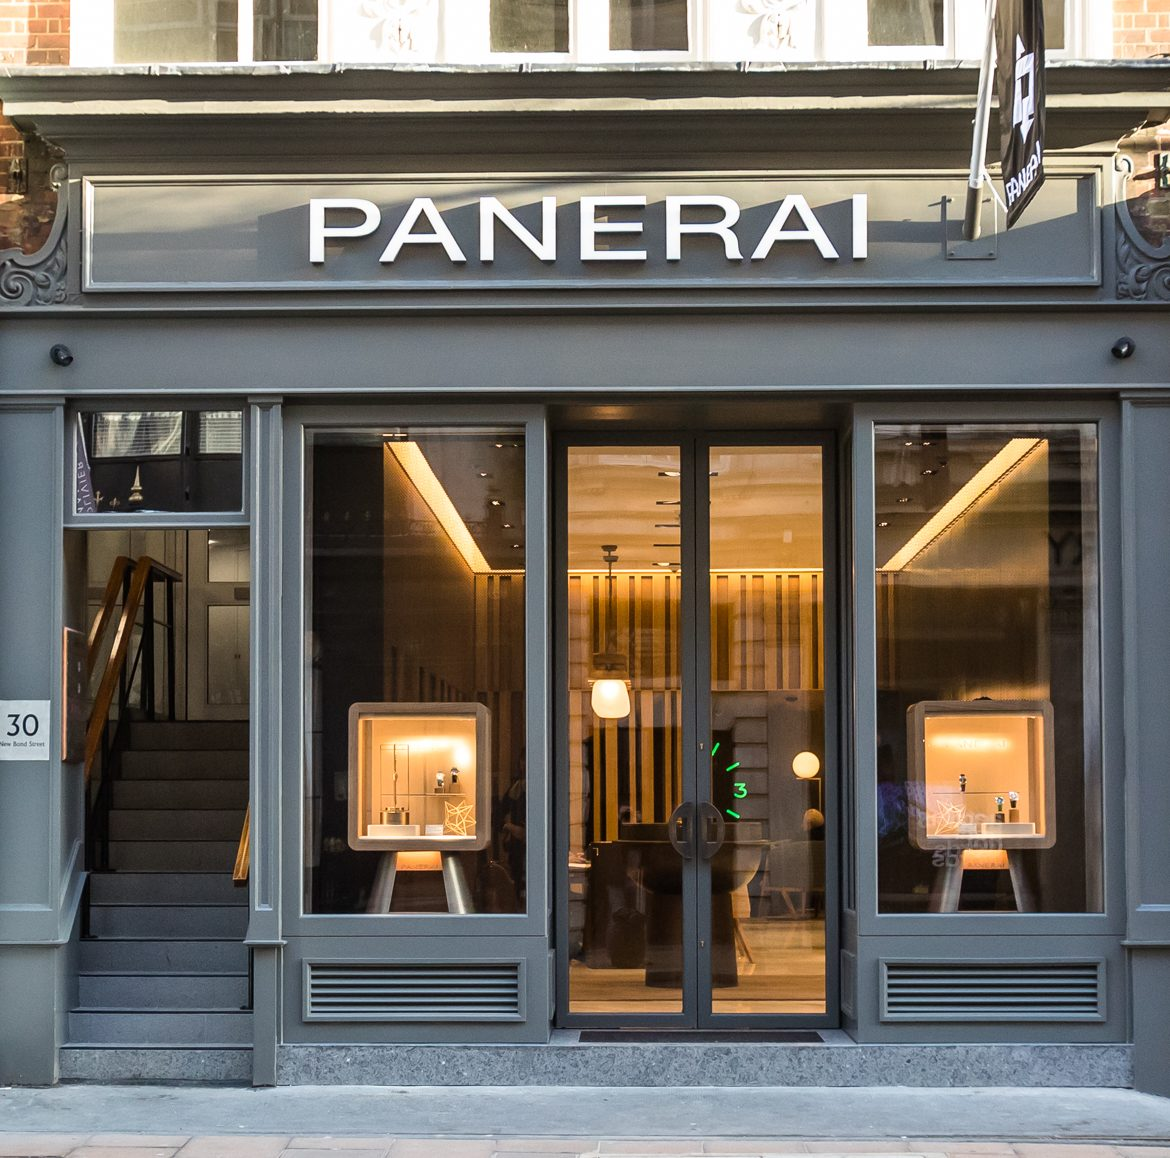 T&B (Contractors) Ltd - Panerai, 30 New Bond Street, London W1S 2RW  19th December 2017